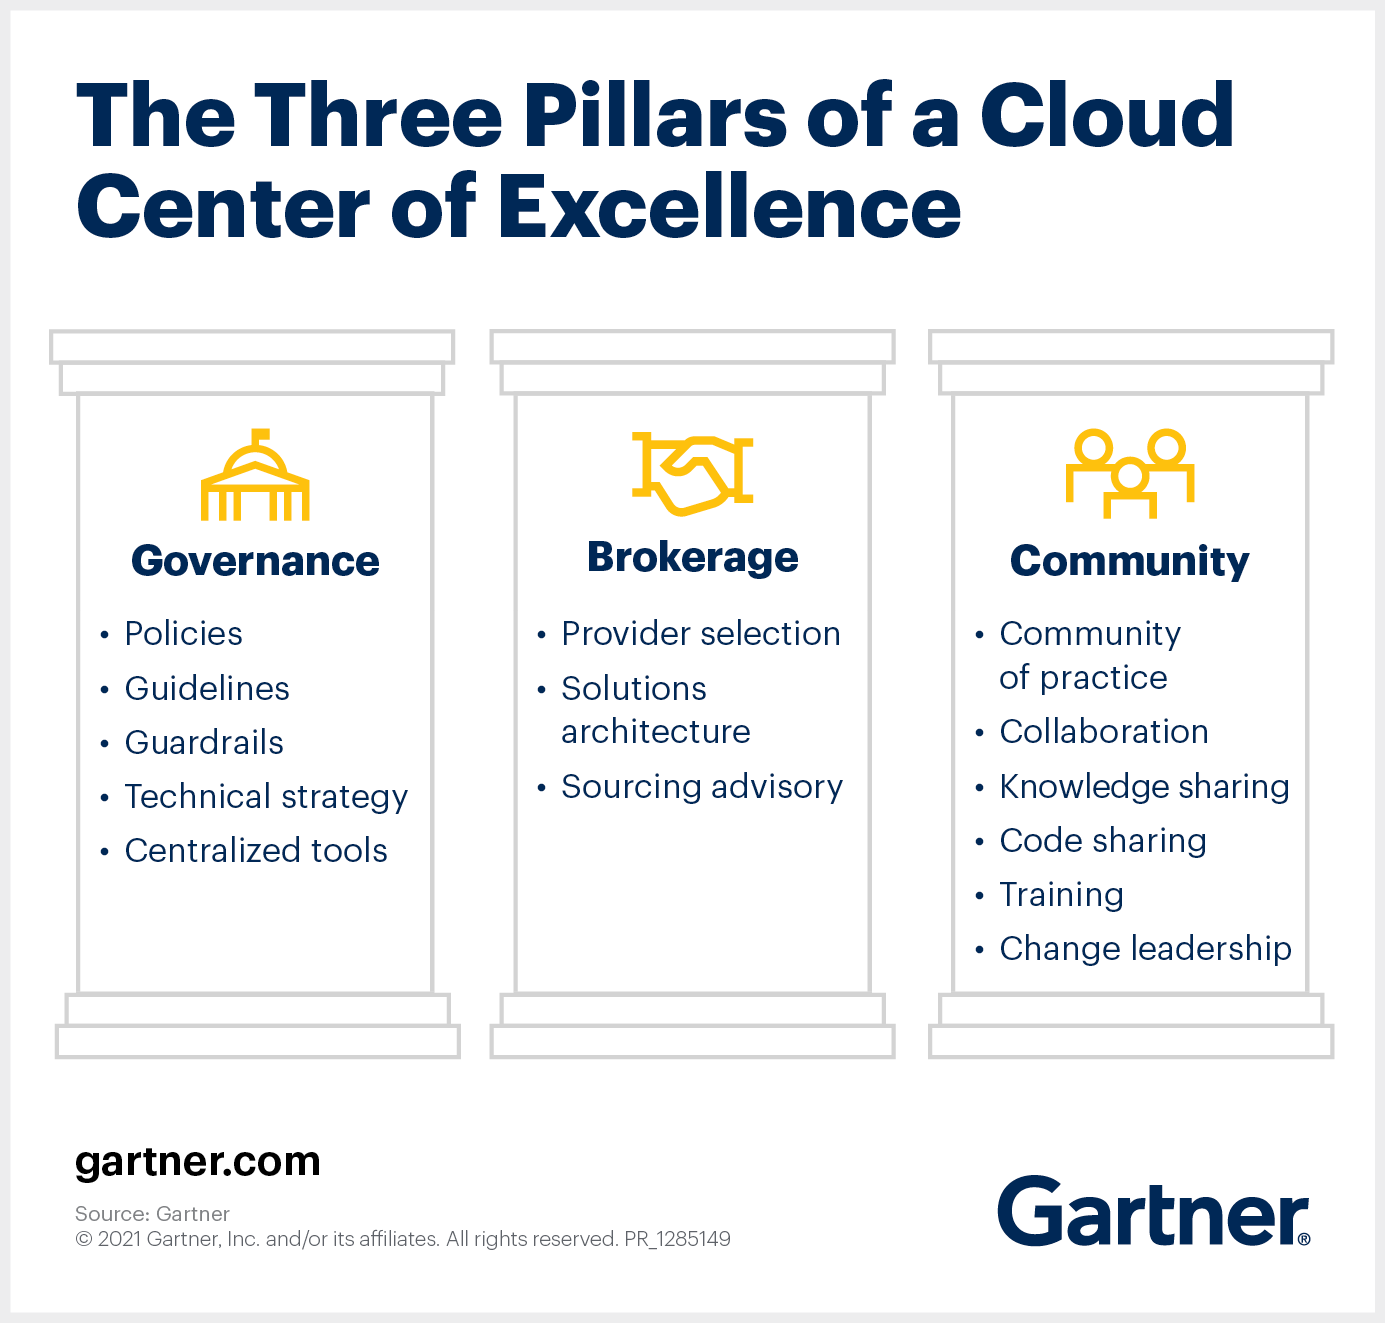 The Three Pillars of a Cloud Center of Excellence